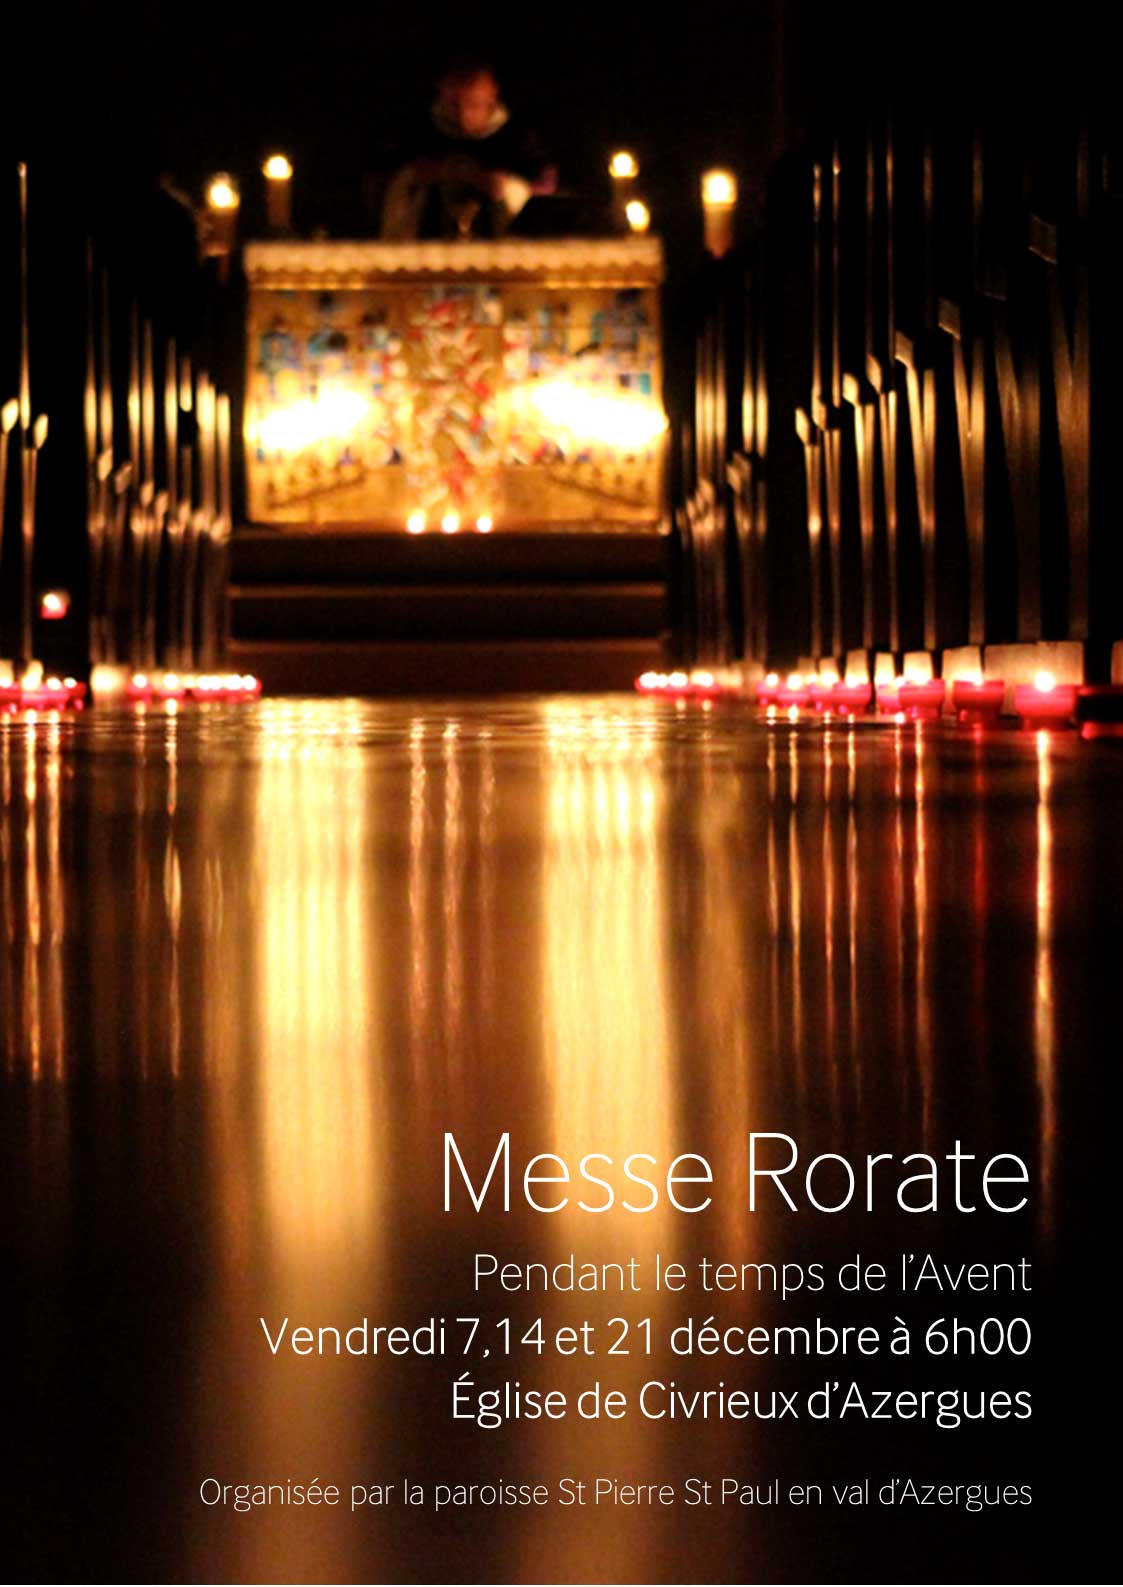 messe-rorate-grand